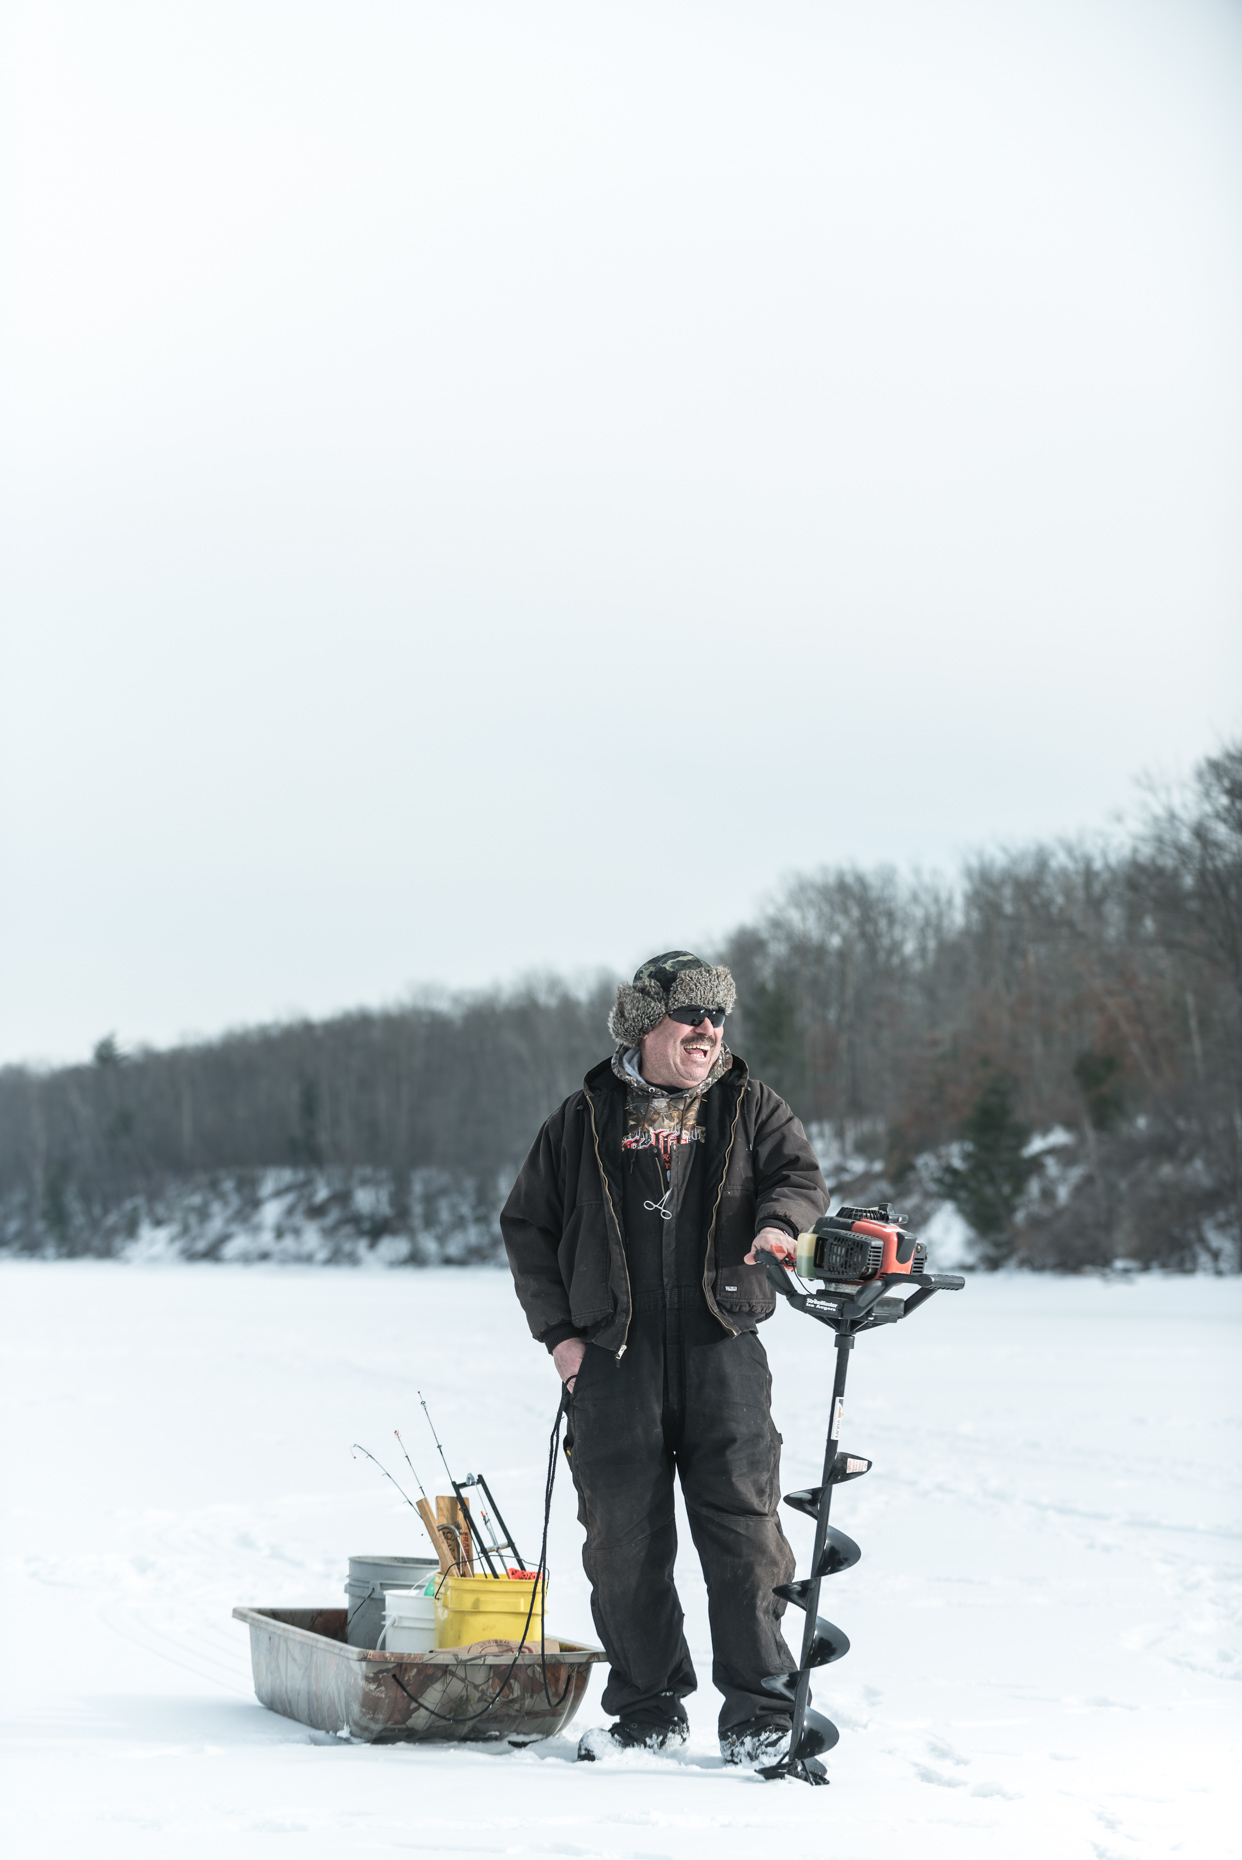 WATS_Michigan_IceFishing-_02C9223